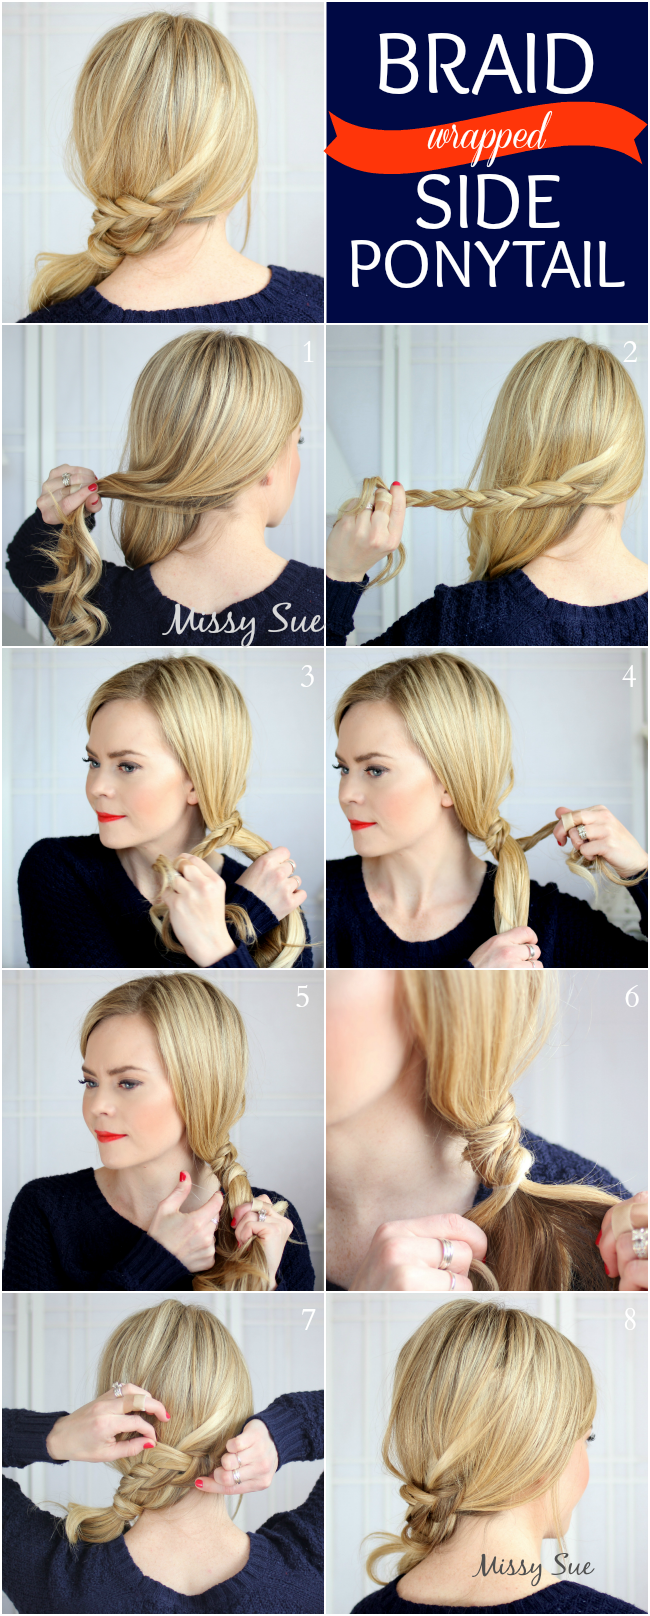 Braid Wrapped Ponytail Hair Missy Sue Blog